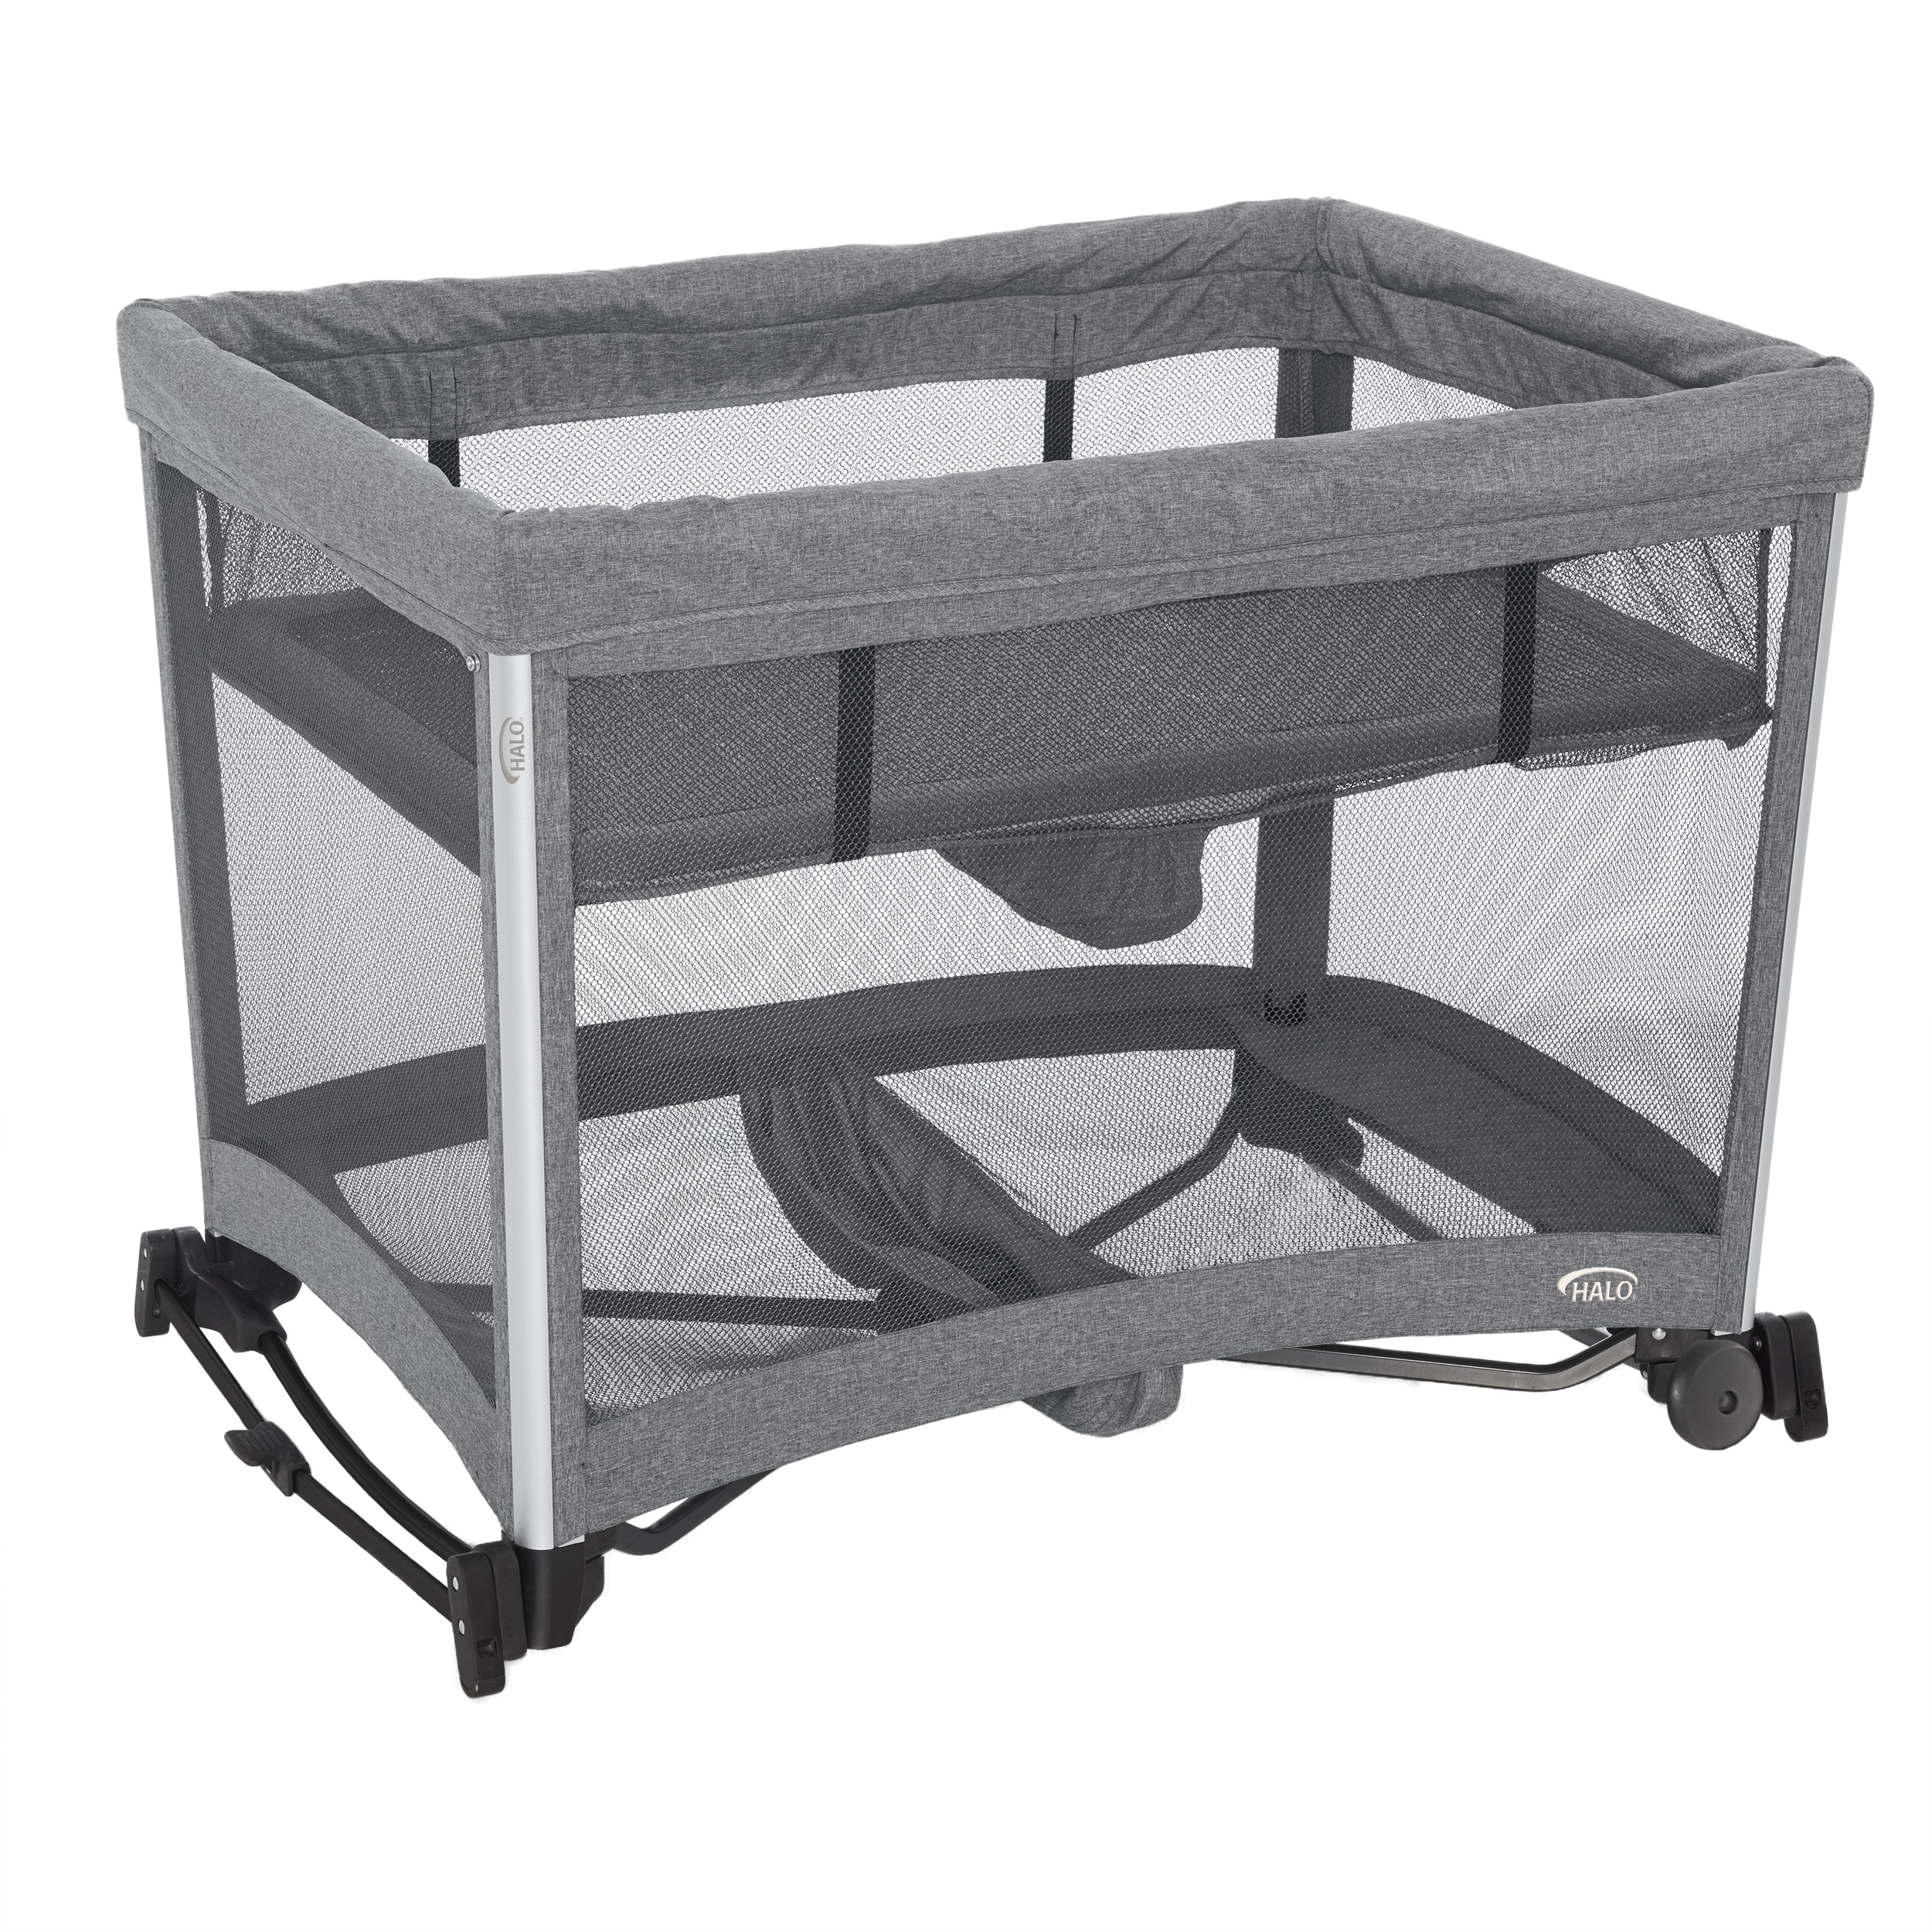 HALO 3-in-1 DreamNest Play Pen with Rocking Bassinet and Breathable Mesh Mattress by HALO